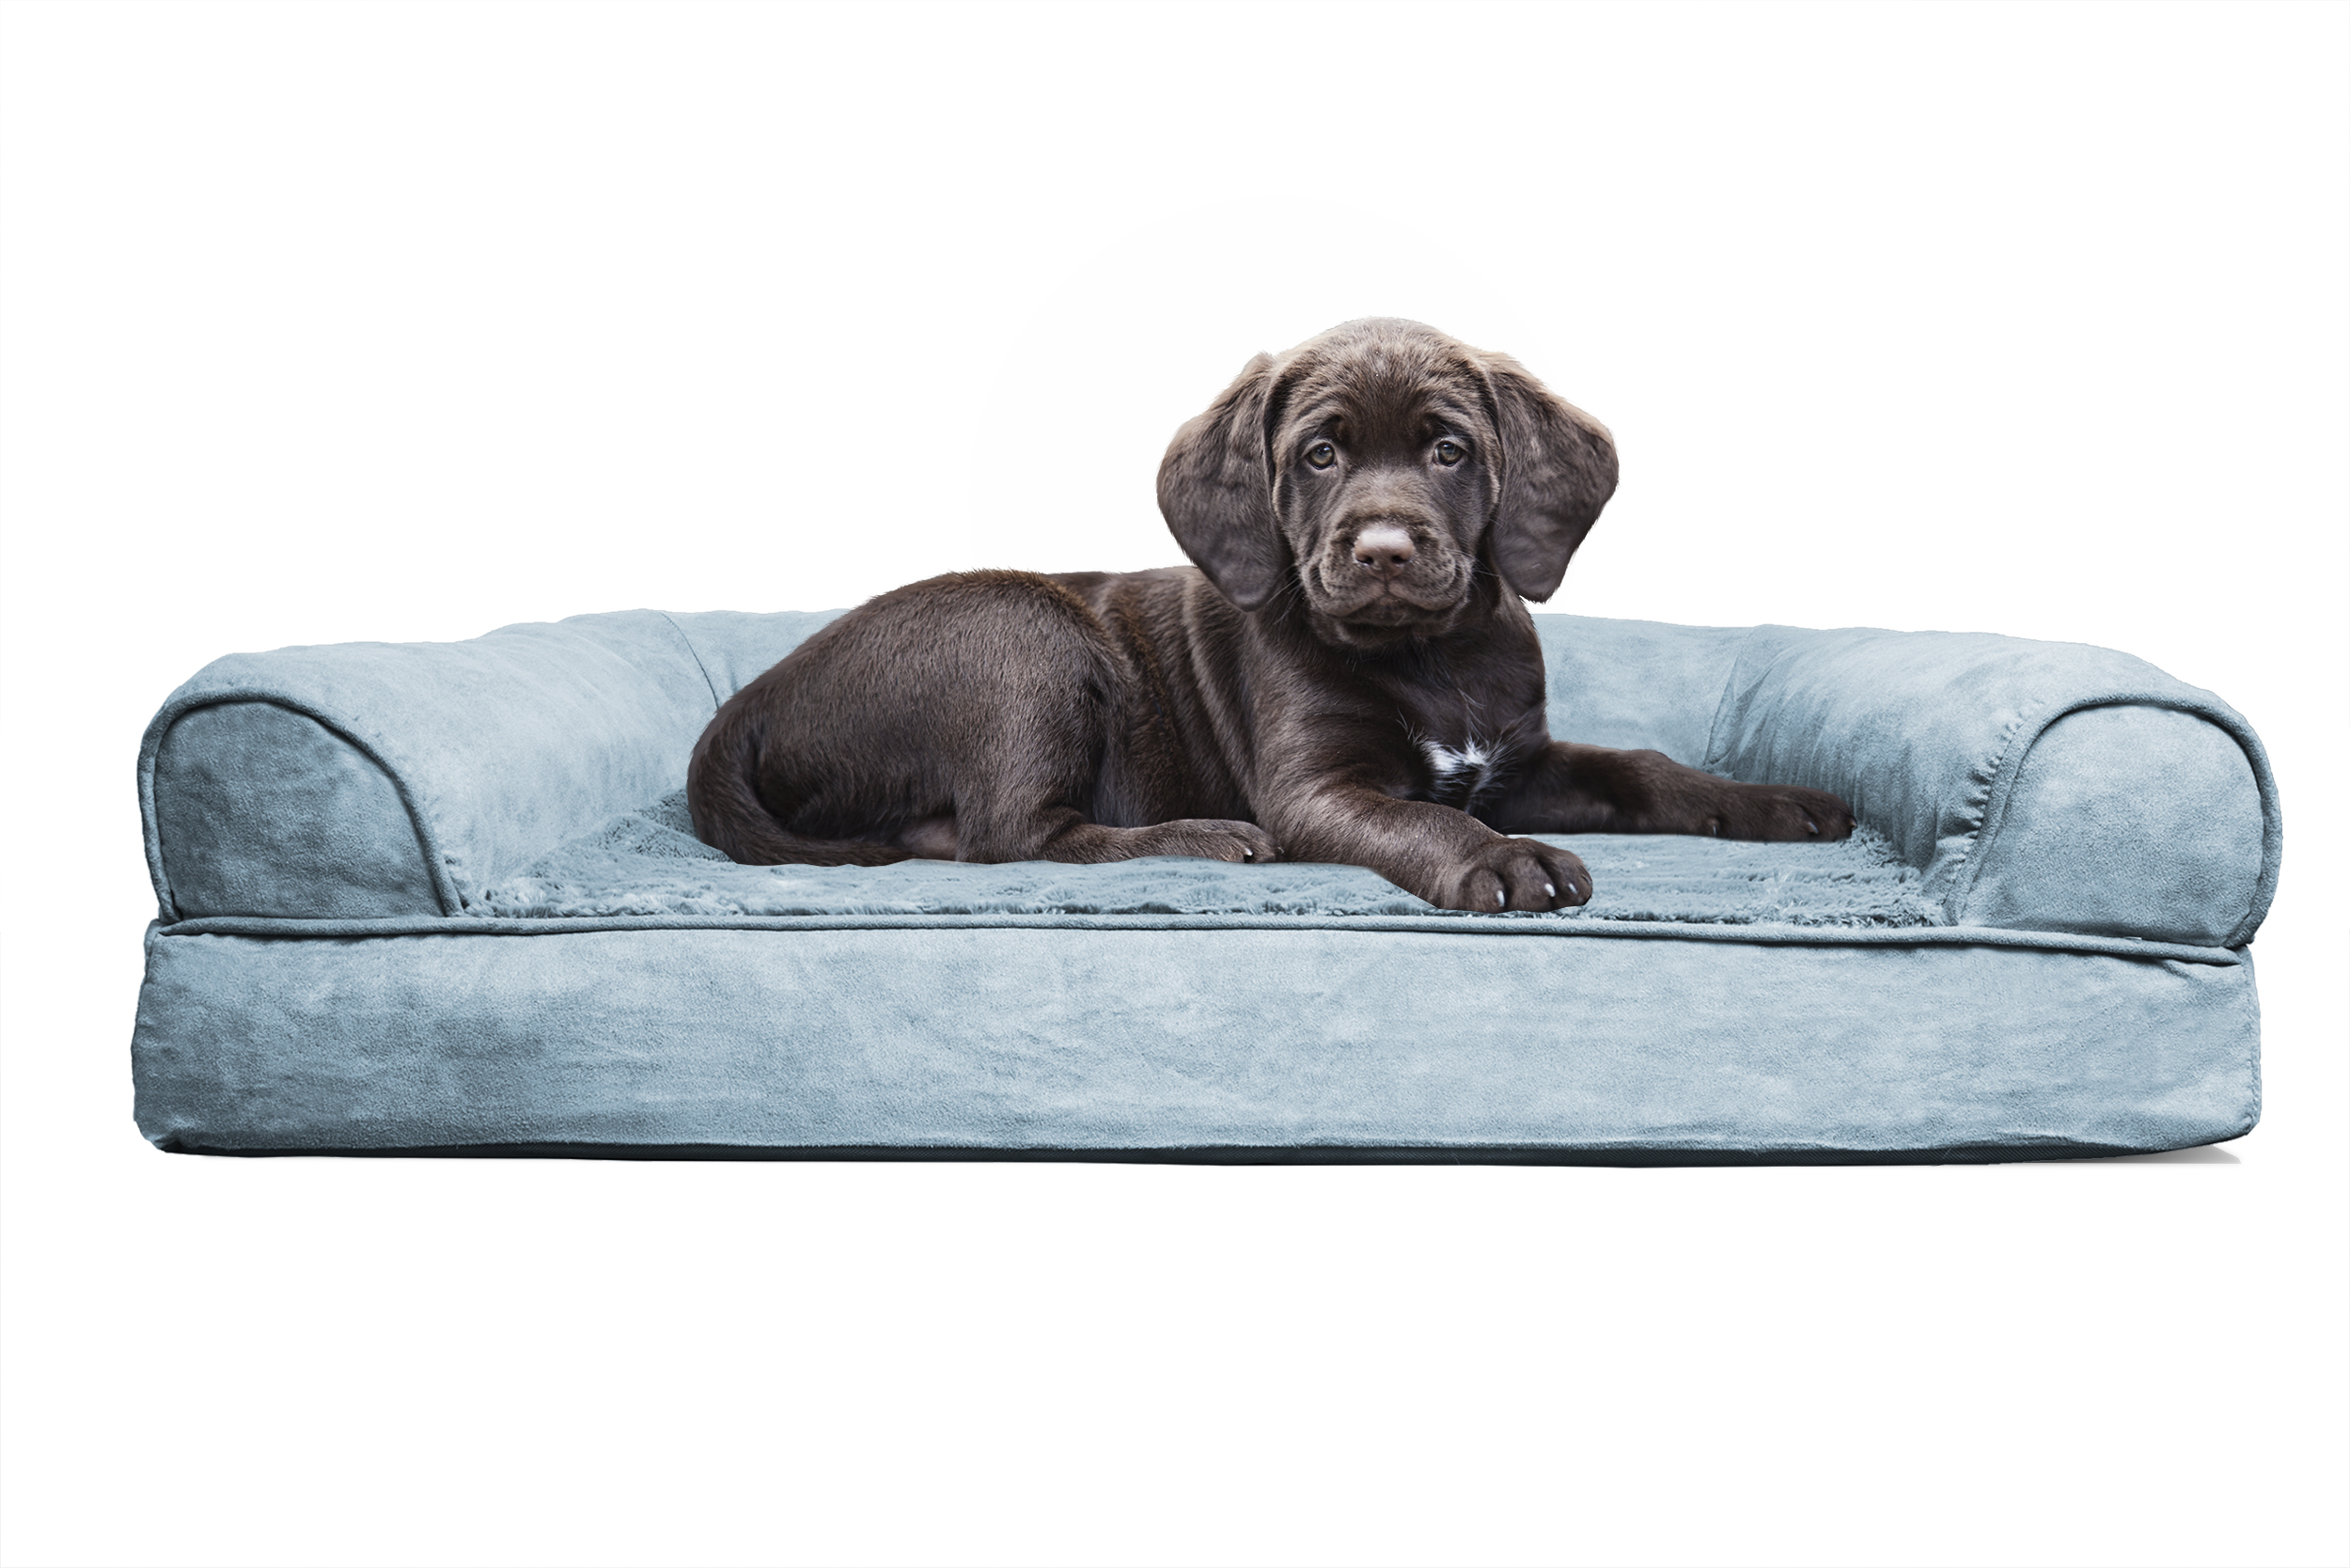 FurHaven Plush & Suede Orthopedic Sofa Pet Bed for Dogs and